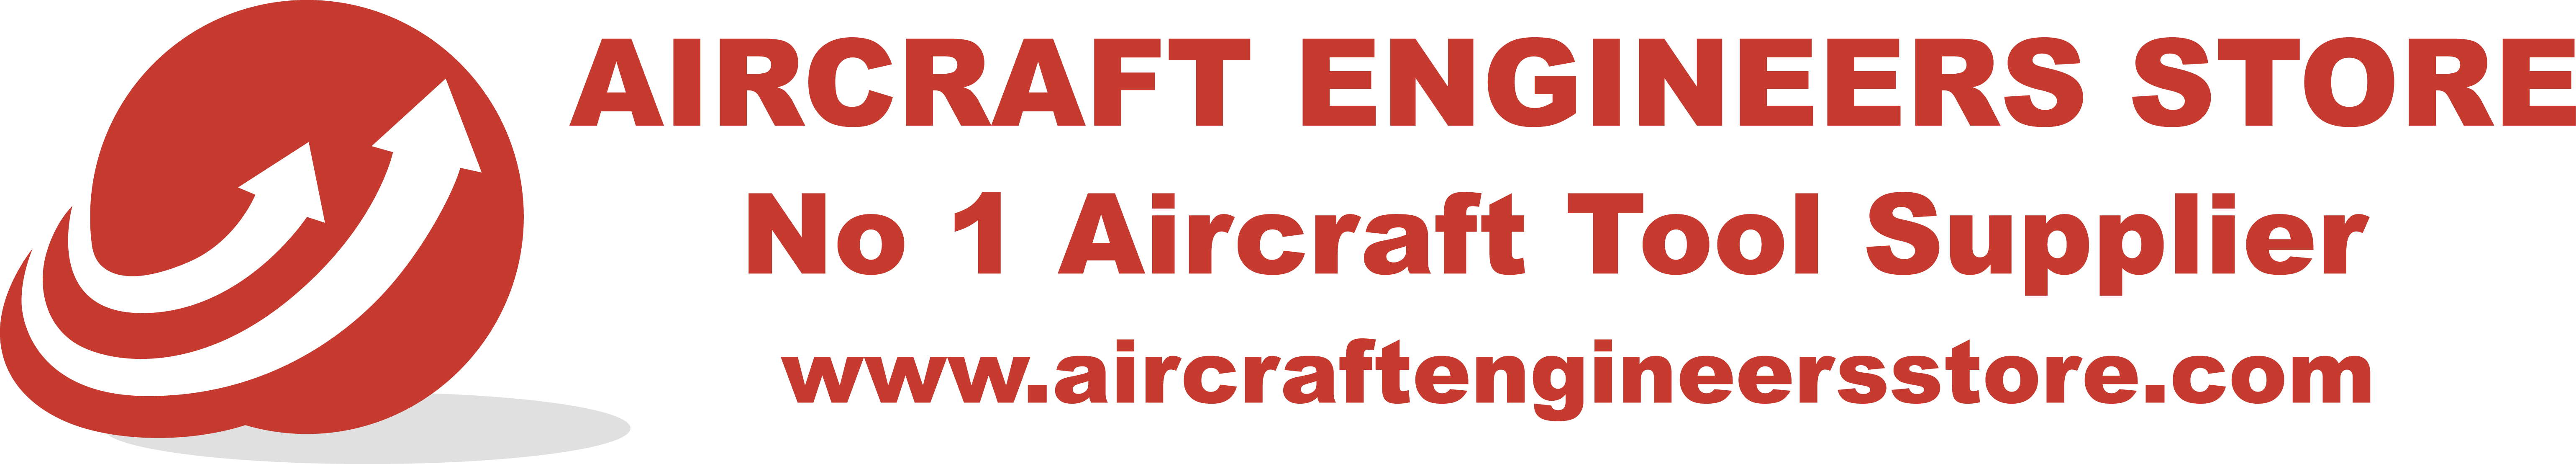 Aircraft Engineers Store | UK